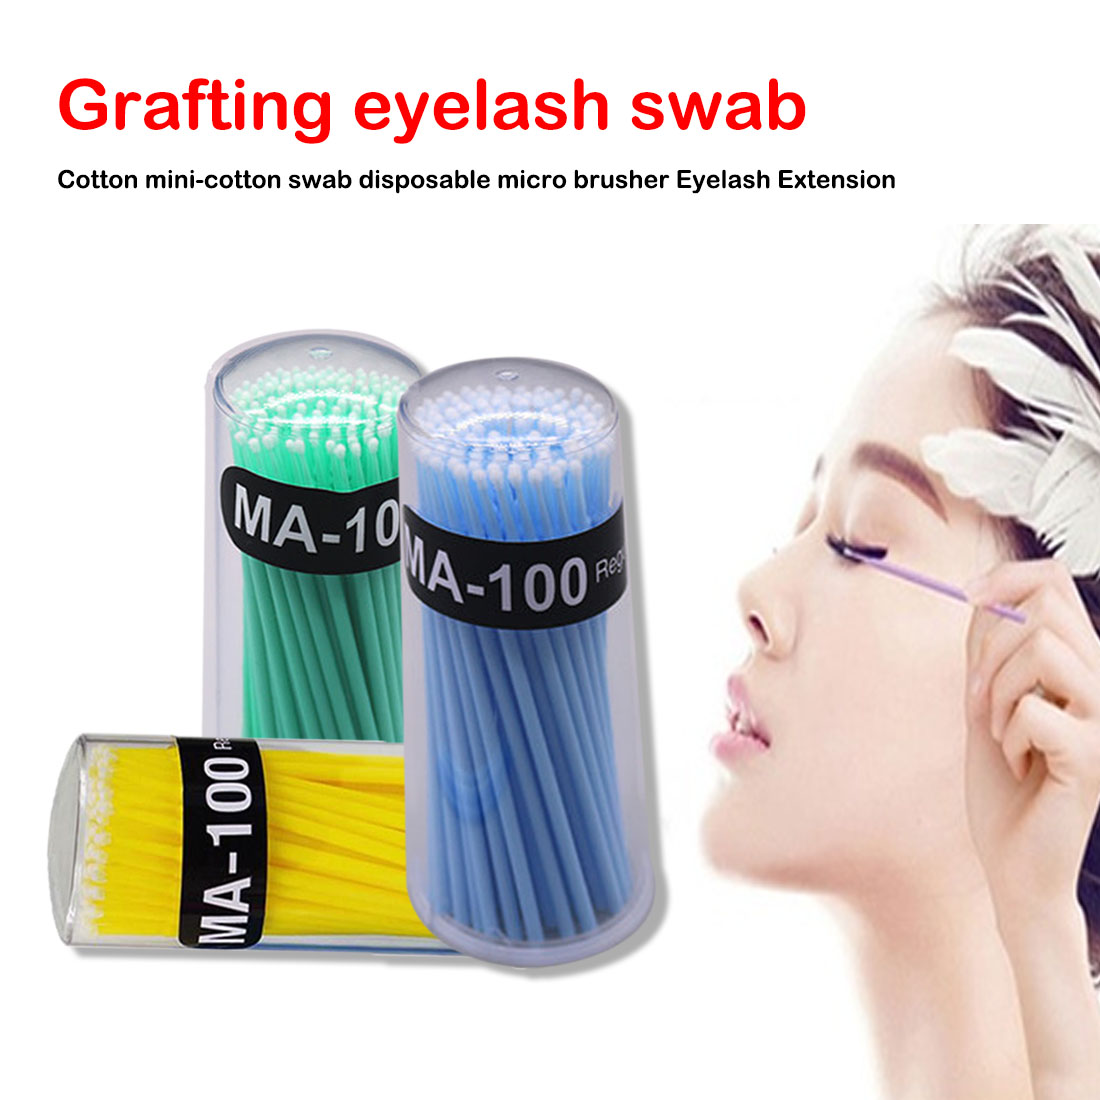 100 Pcs/Pack Micro Brush Disposable Microbrush Applicators Eyelash Extensions Remove False Eyelashes Cotton Swab